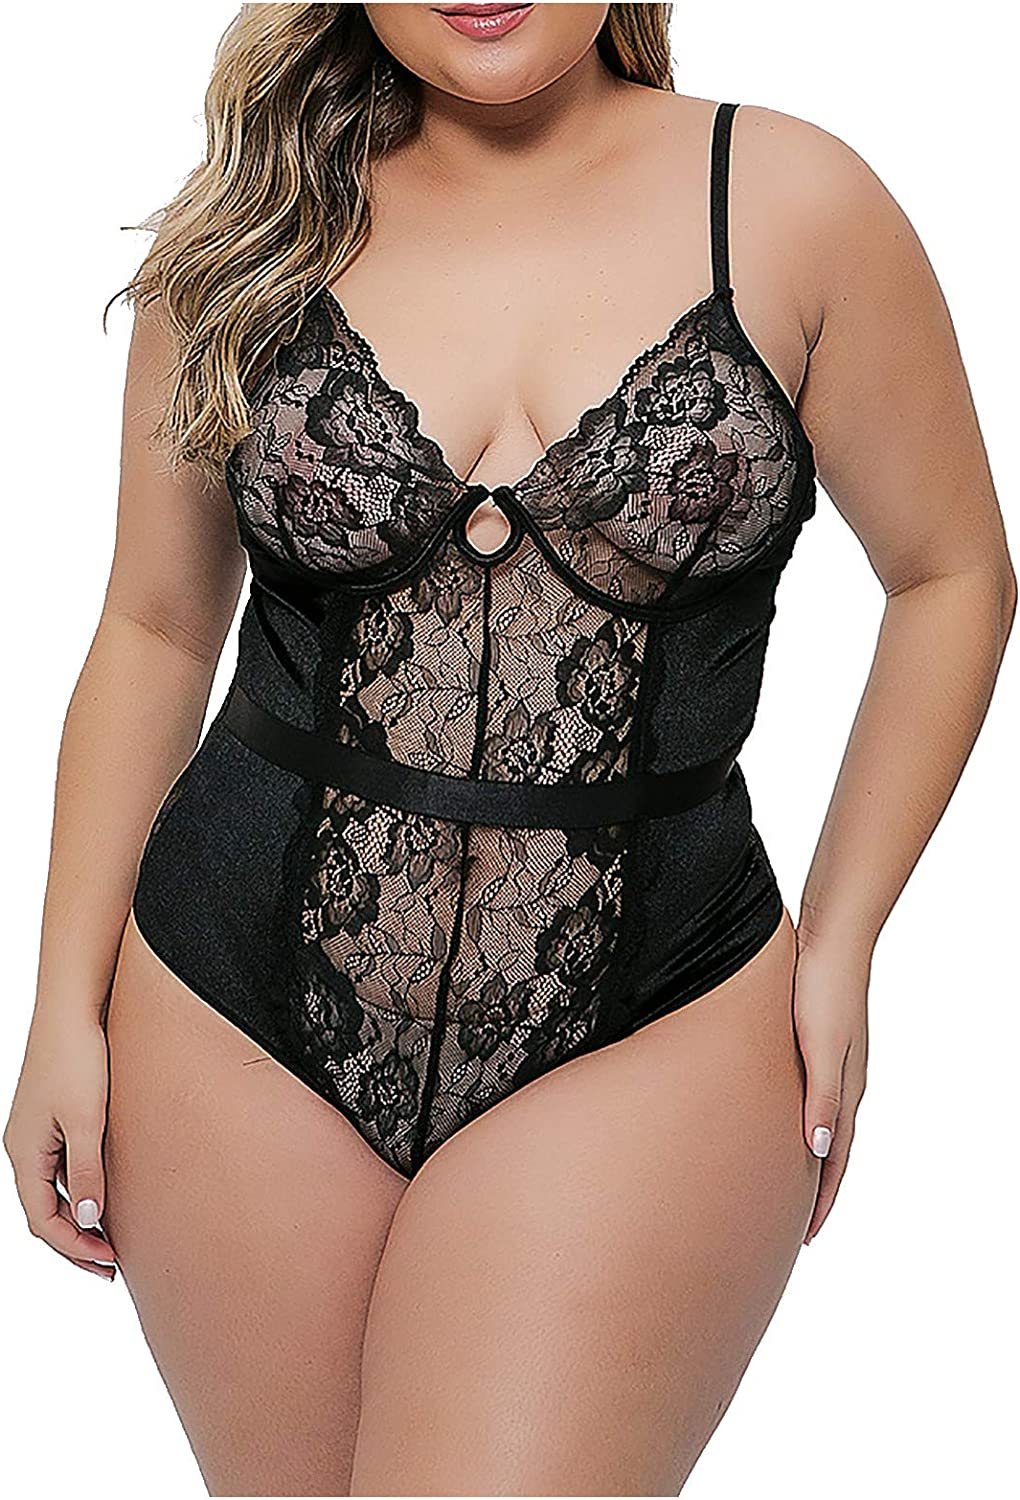 XUETON Womens Plus Size Lingerie Sexy See Through Sheer Mesh Plunging One Piece Babydoll Lace Teddy Bodysuit